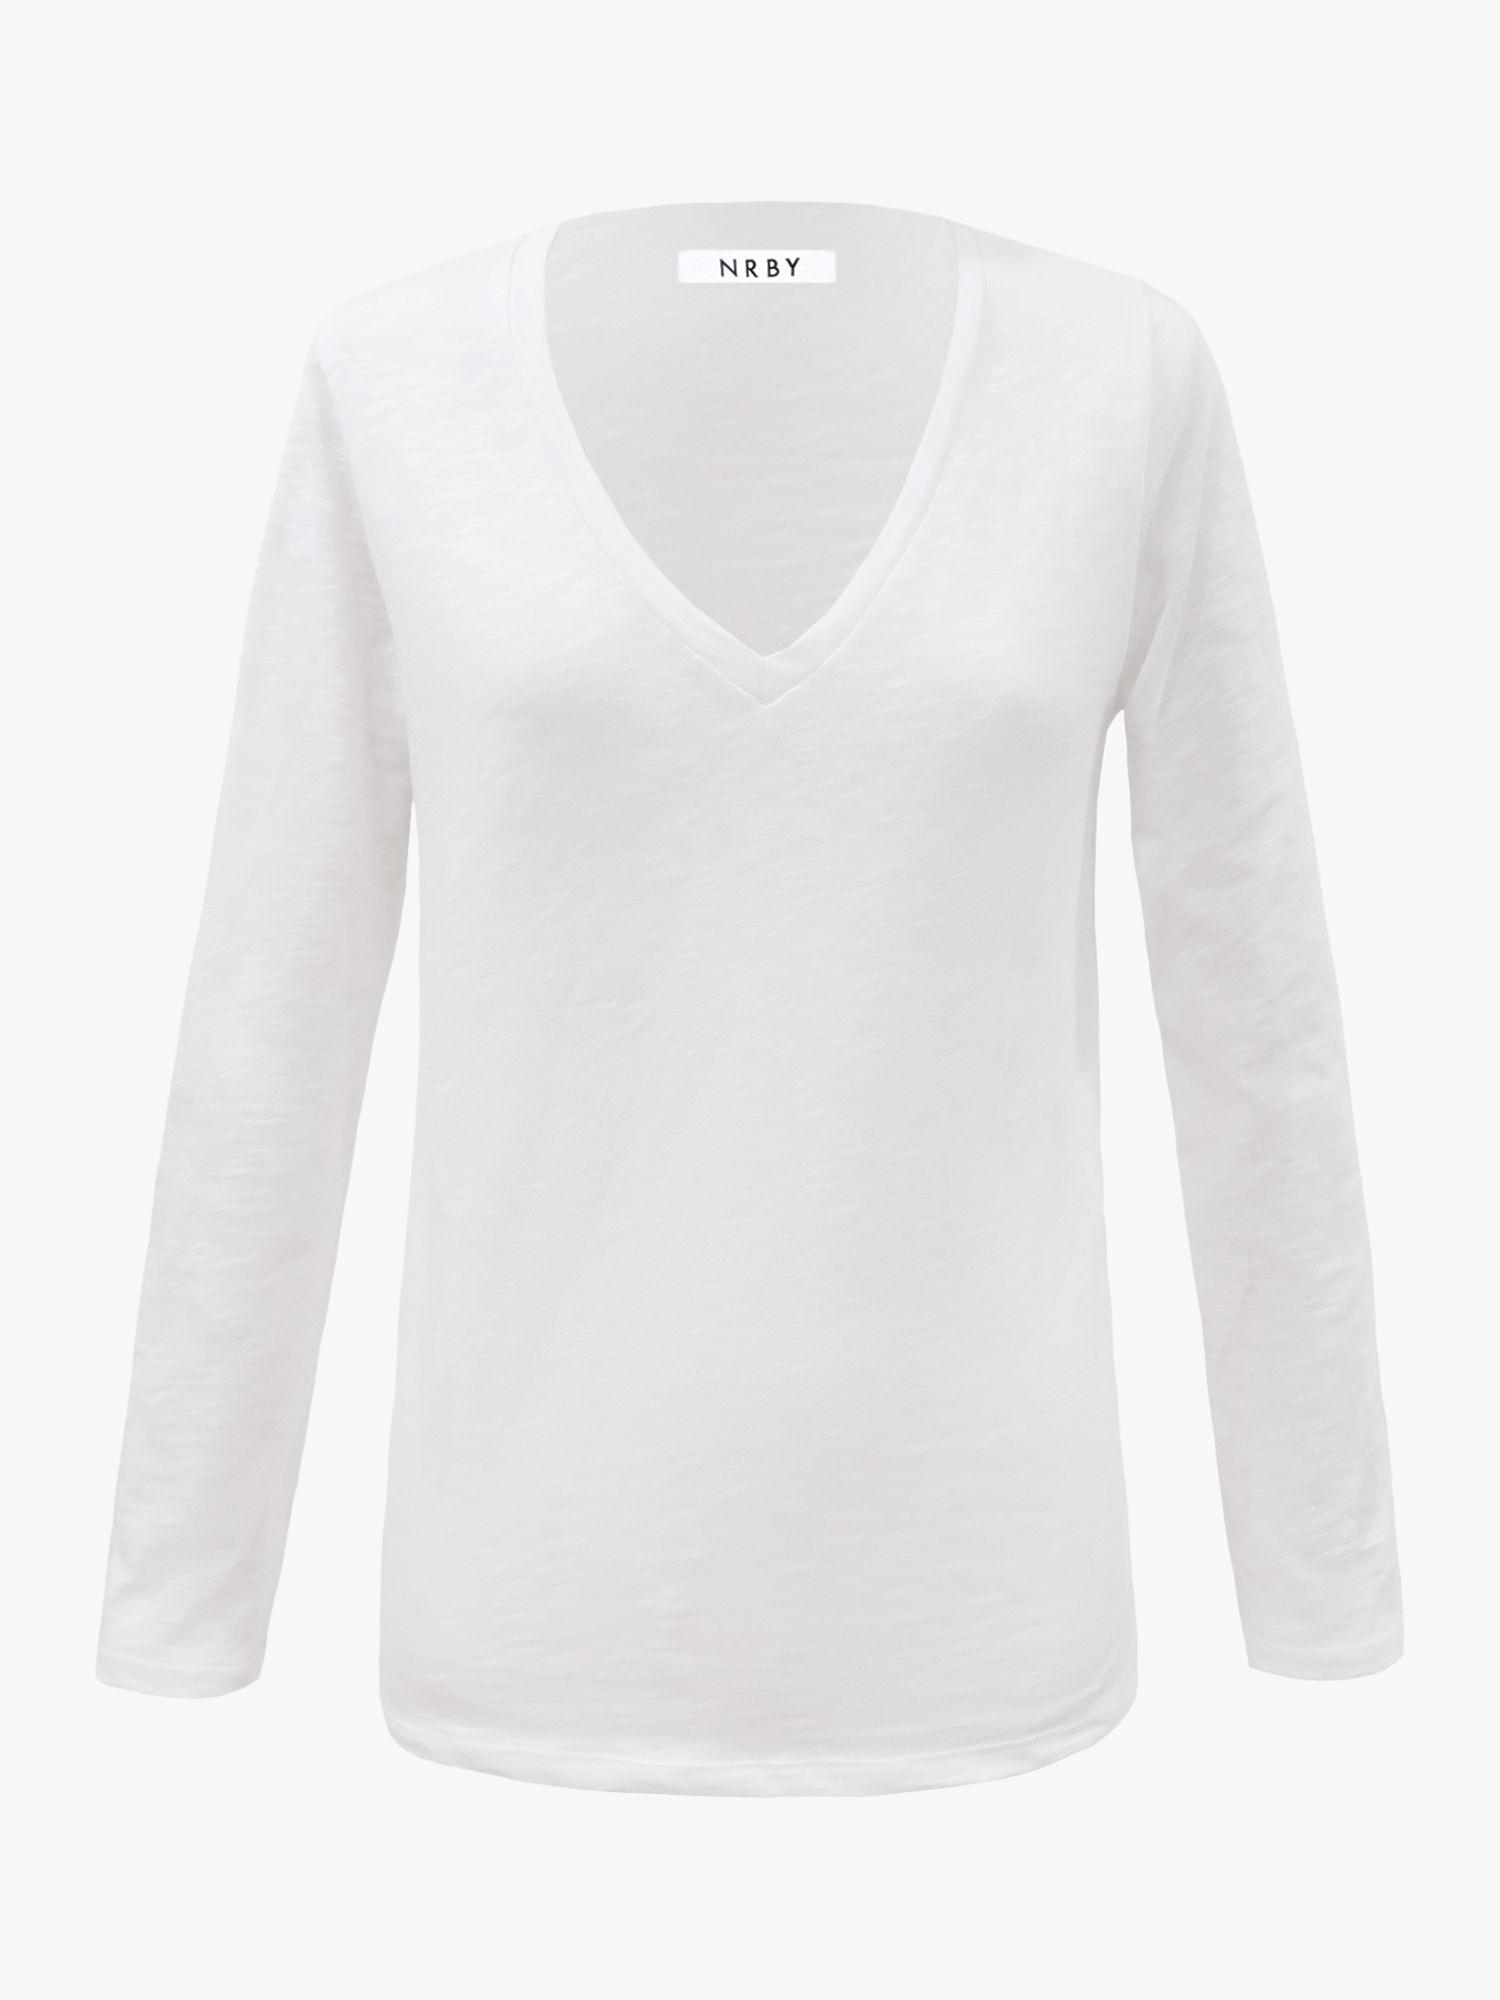 NRBY Jamie Long Sleeved Cotton T-Shirt